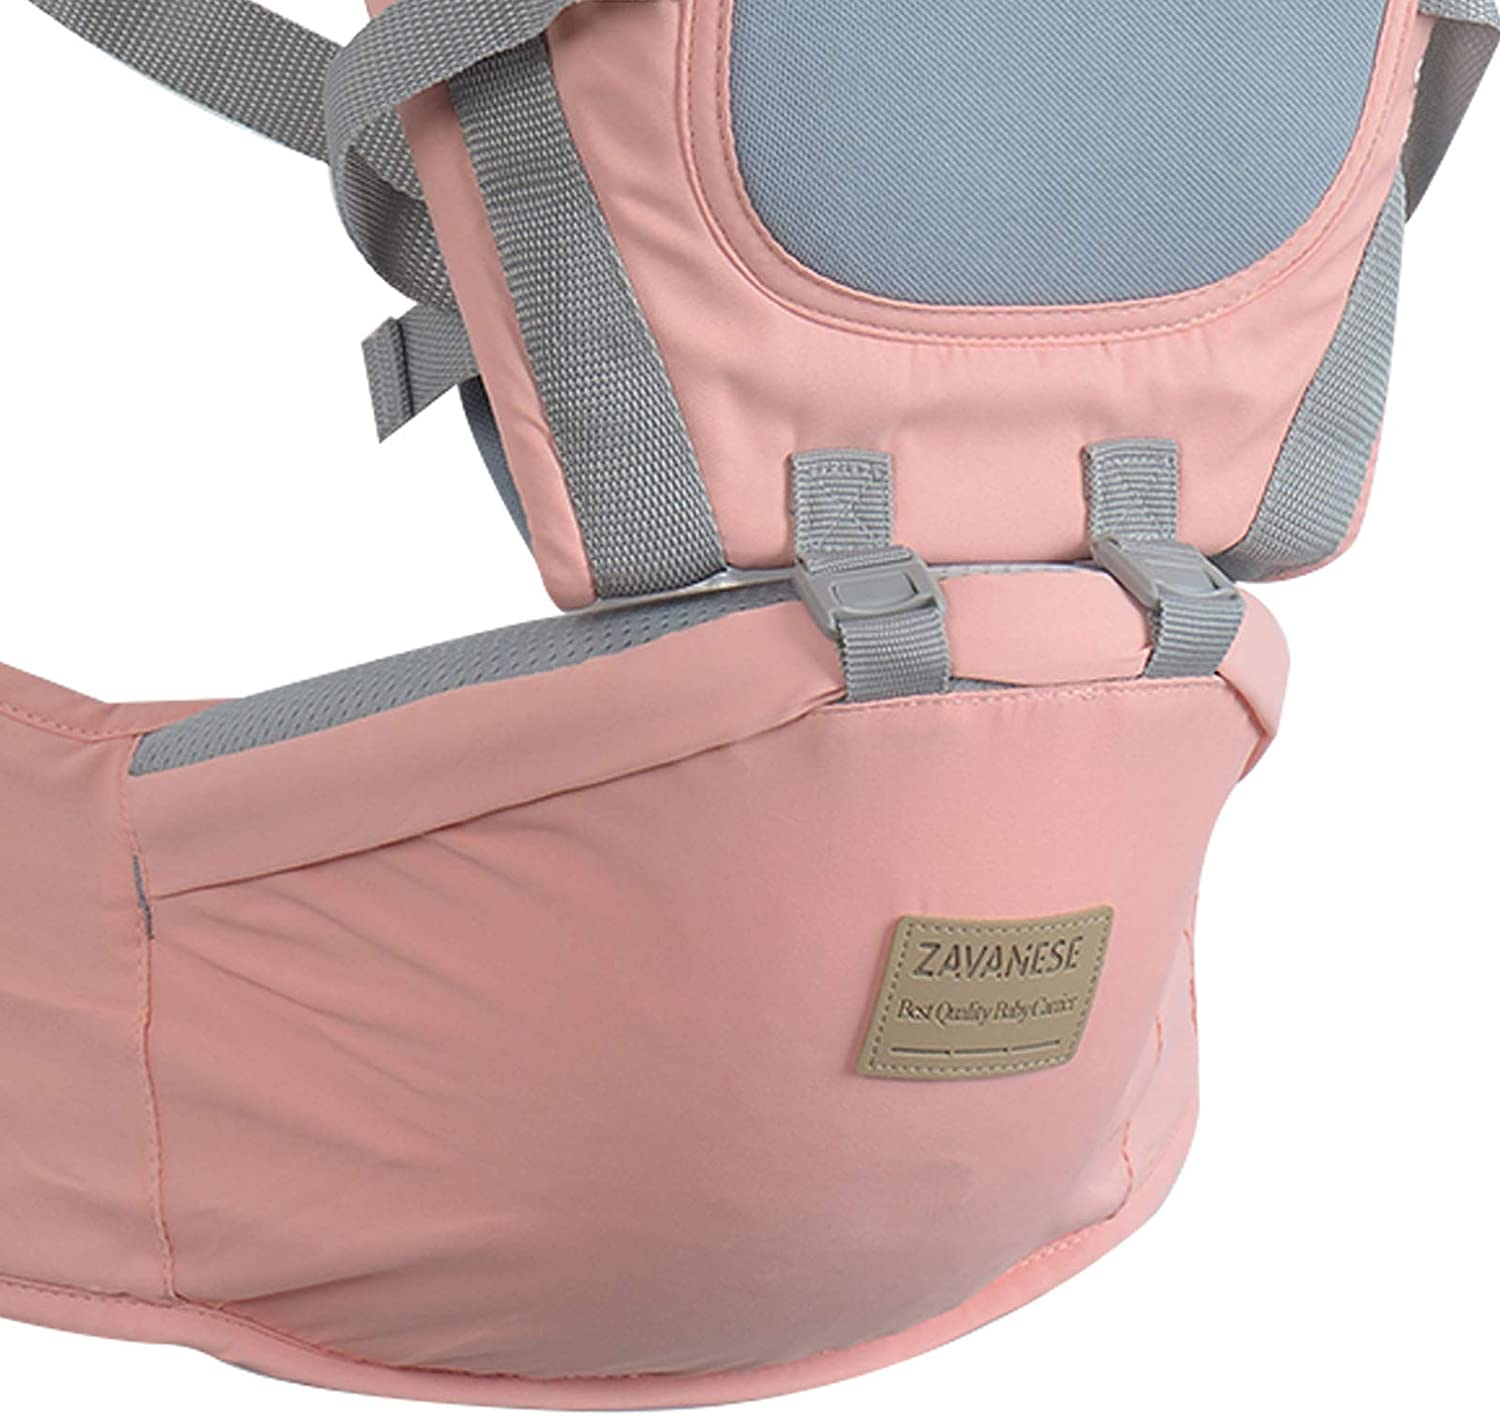 YORKING Baby Carrier Breathable Carrier for Infants and Toddlers Adjustable Baby Carrier Wrapped Carrier with Hip Seat Newborn Backpack Breastfeeding Baby Carrier Pink